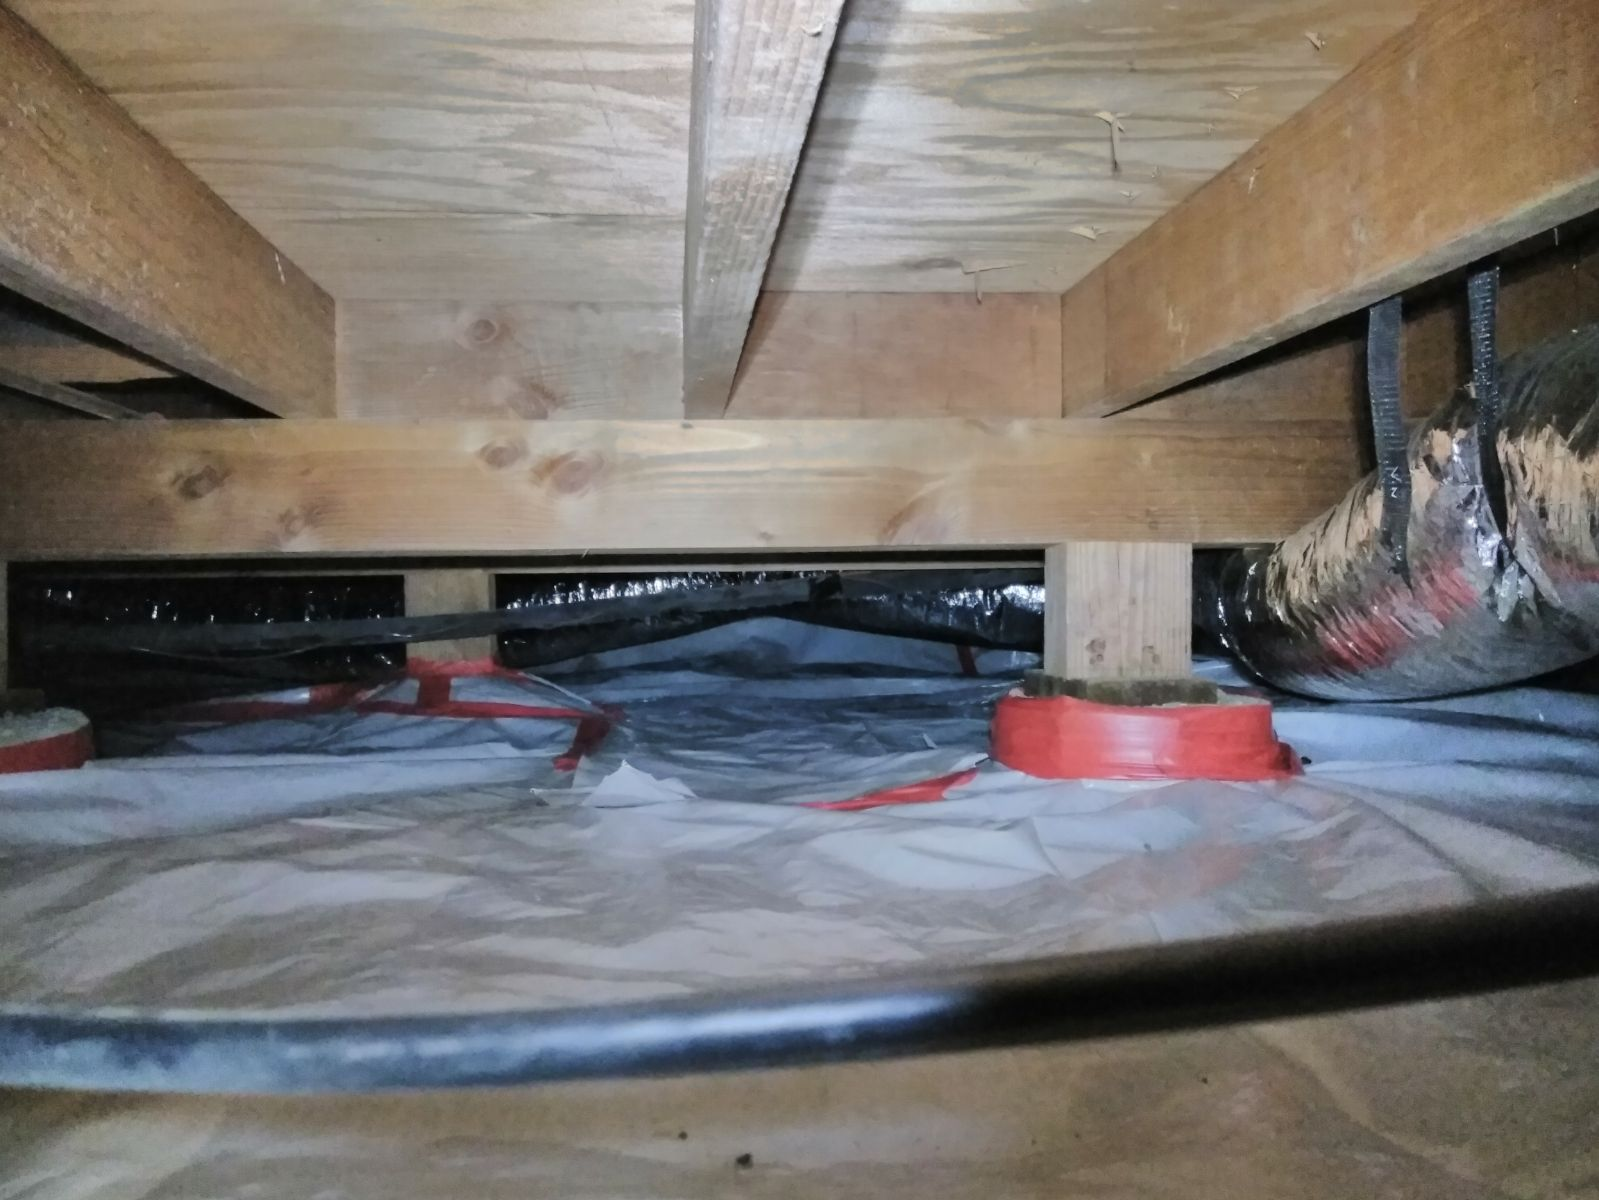 Rodent Solutions Pro - Rodent Proofing | Attic Insulation Removal Oakland, CA image 11